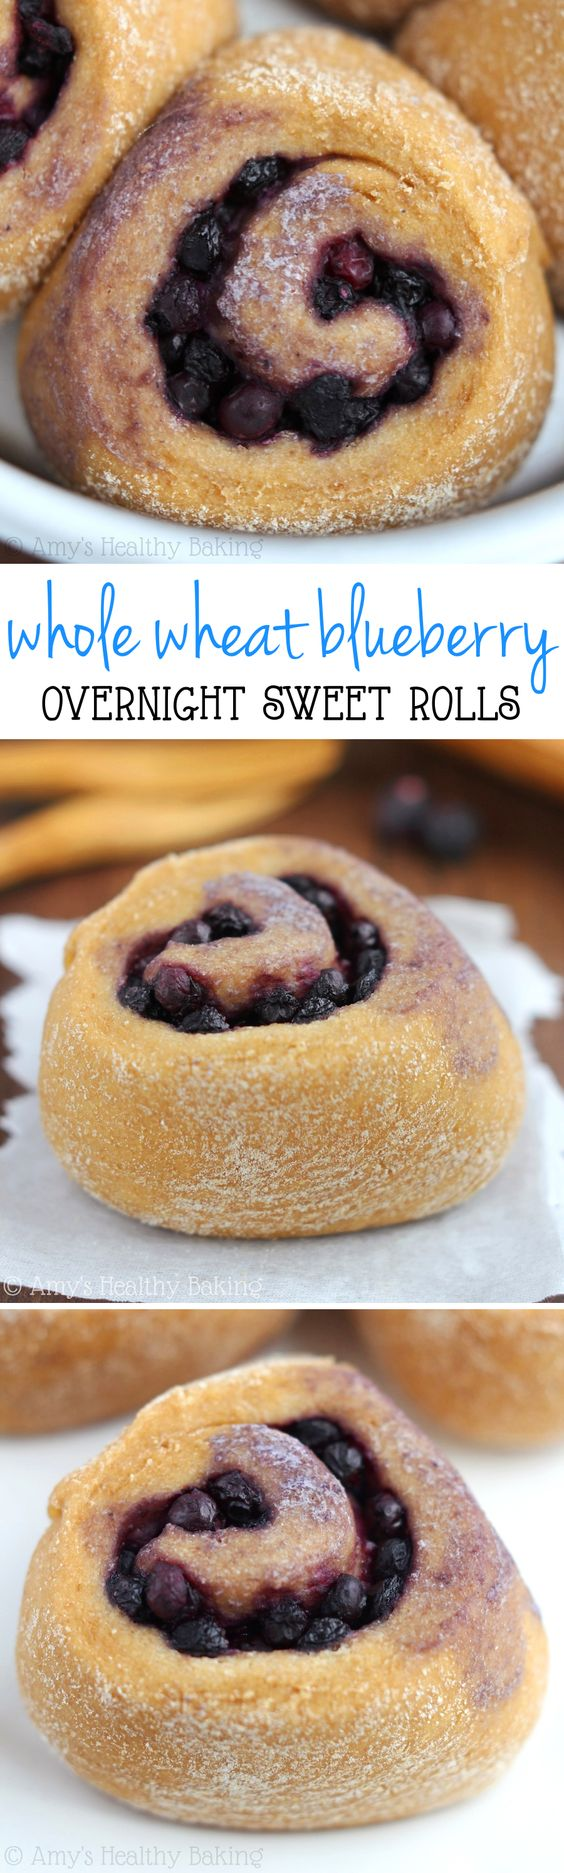 Overnight Whole Wheat Blueberry Rolls -- an easy, clean-eating recipe for a sweet & healthy breakfast!